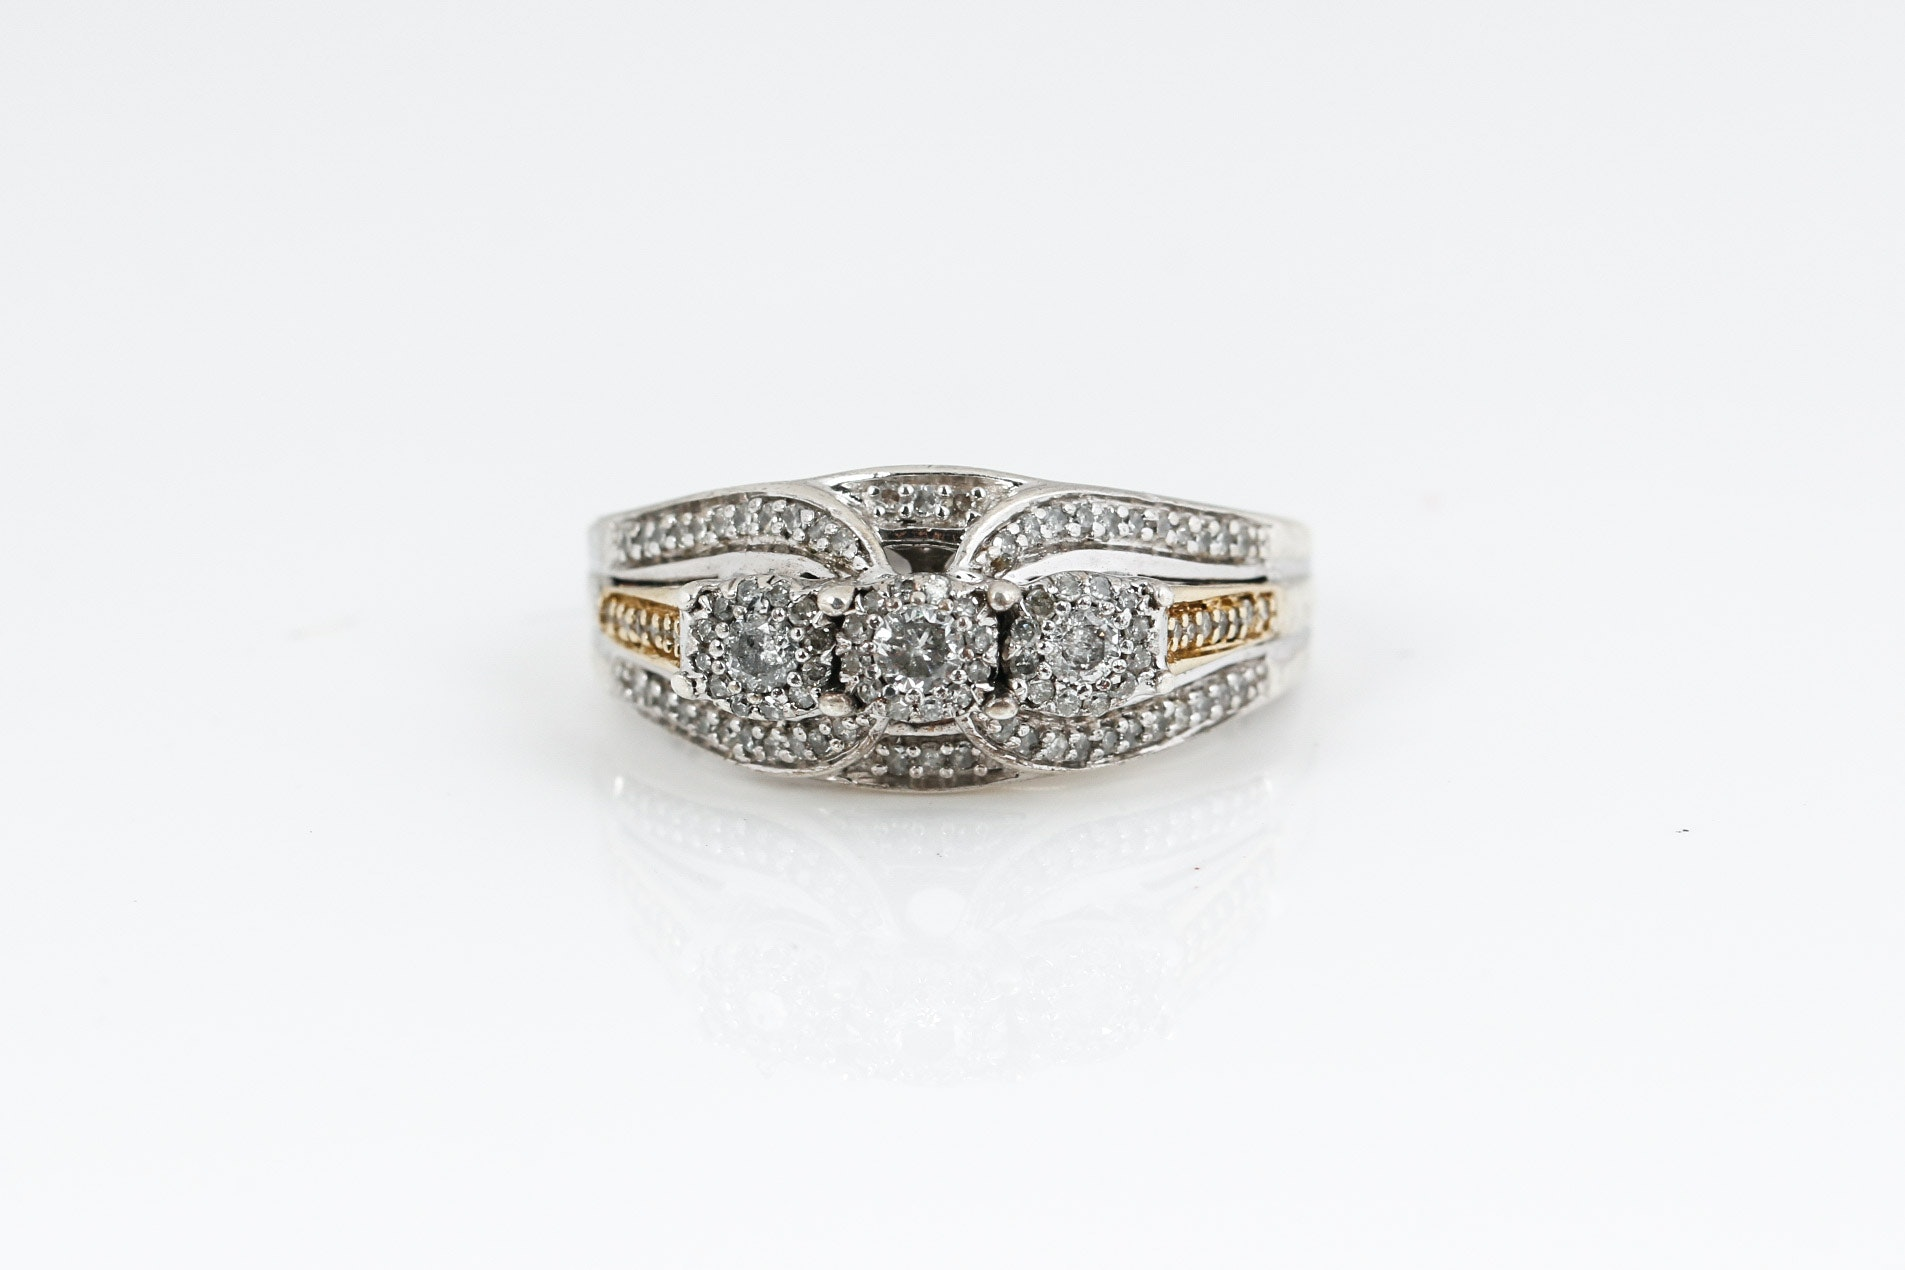 10K Yellow Gold, Sterling Silver and Diamond Ring